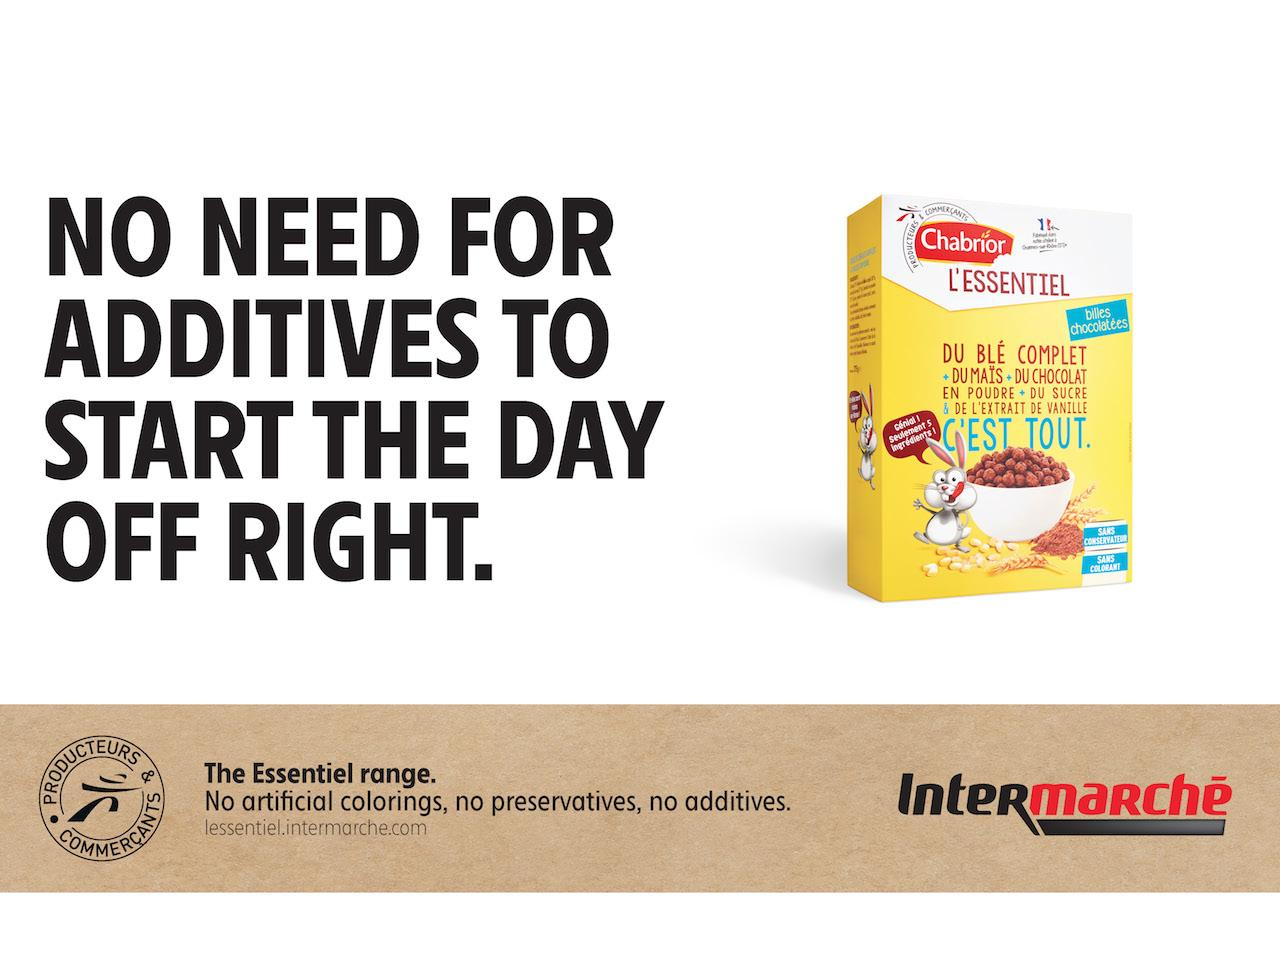 Intermarche Print Ad - The Taste of Colors, 4